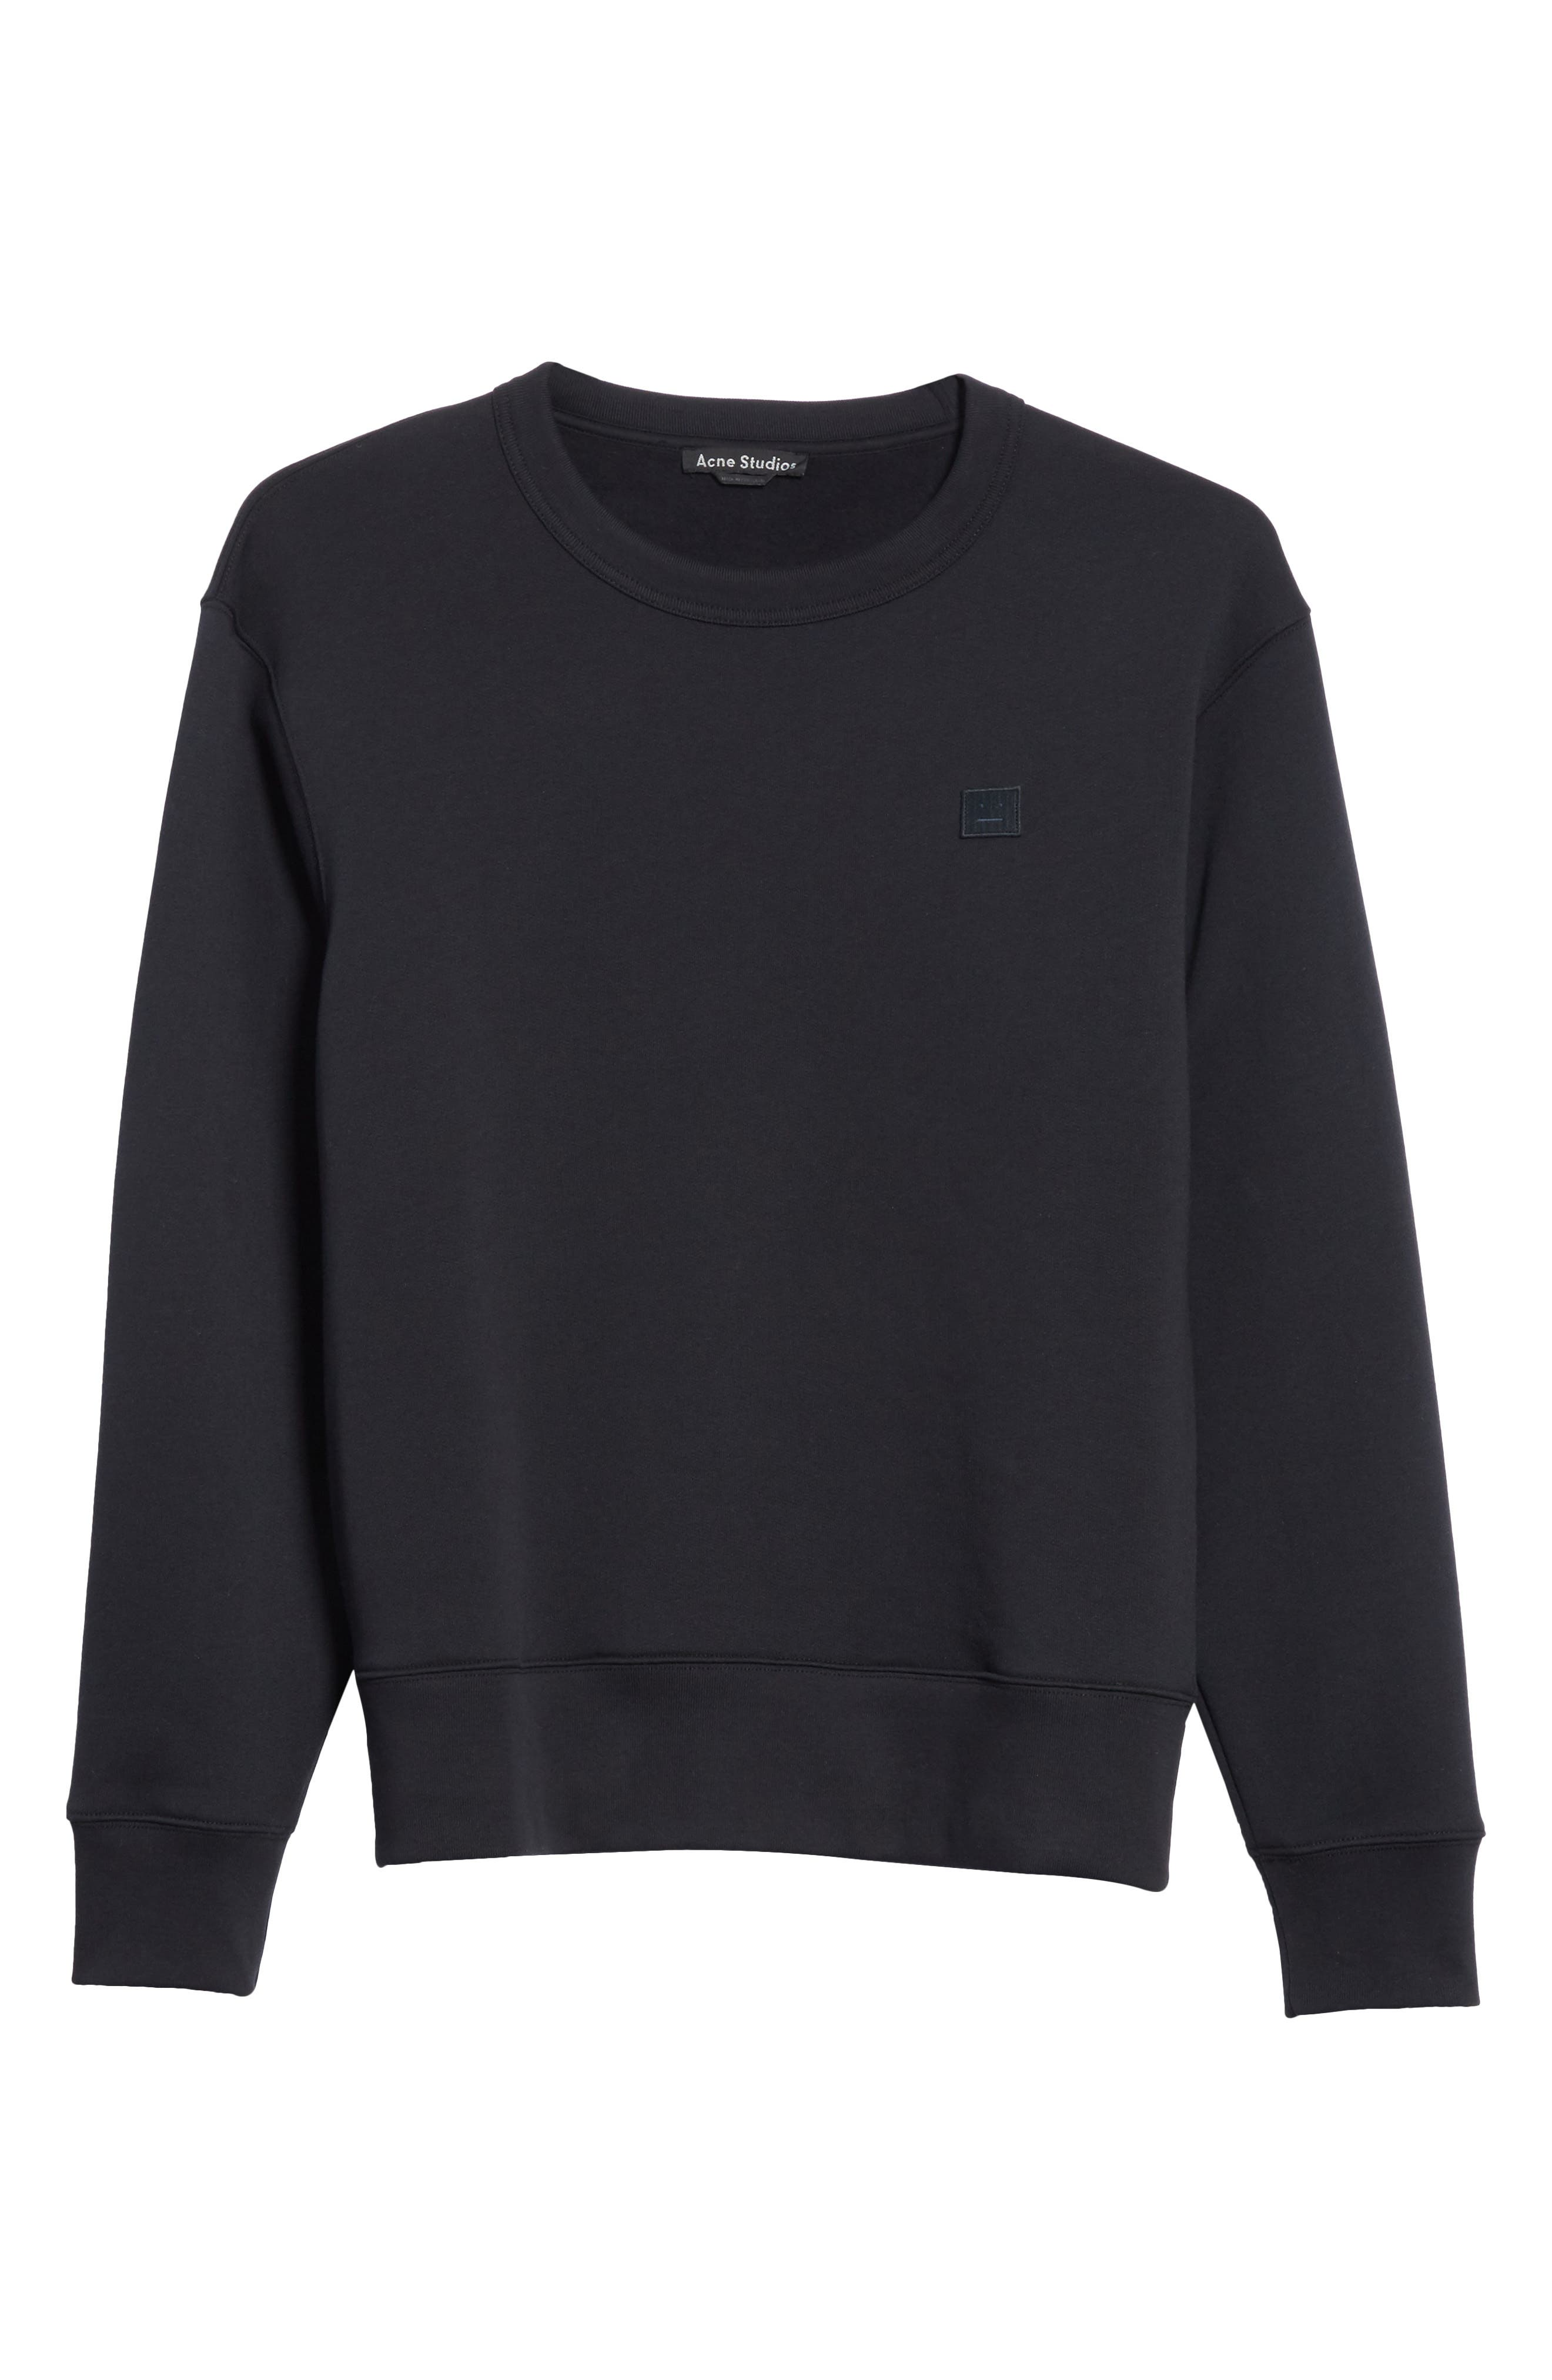 ACNE STUDIOS, Fairview Face Crewneck Sweatshirt, Alternate thumbnail 6, color, BLACK